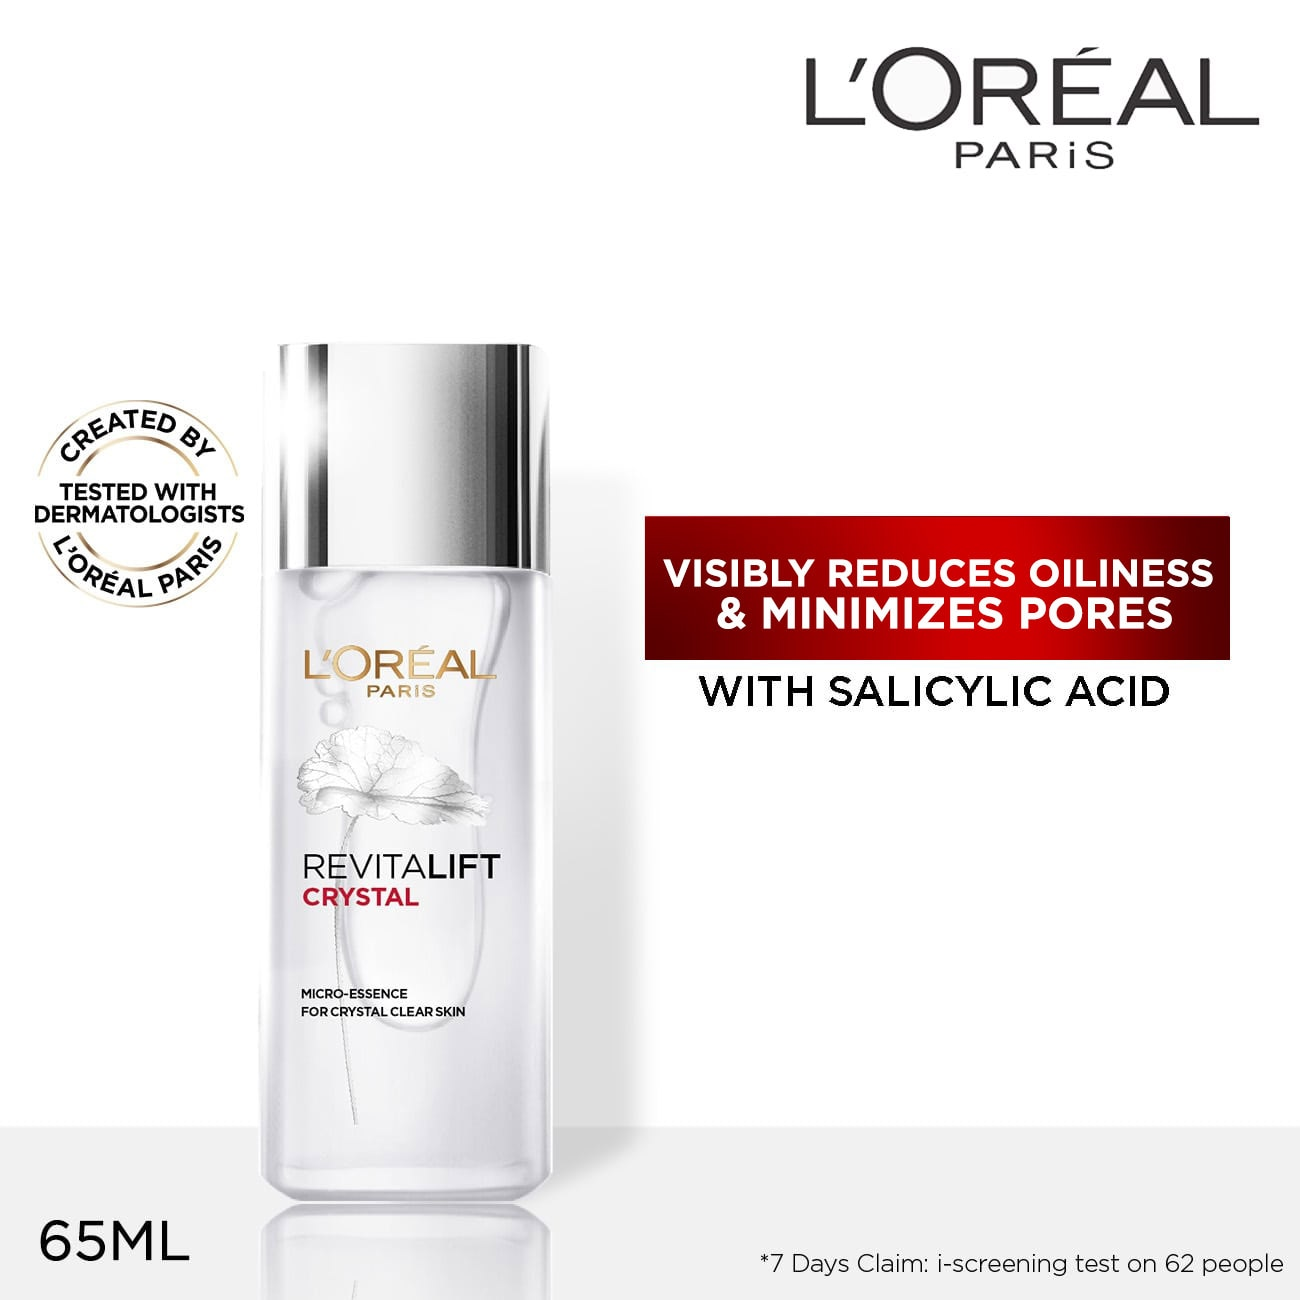 LOREALParis Revitalift Crystal Micro Essence 65mL Toner with Salicylic Acid [Pore Minimizer],Serum/EssenceFree (1) Watsons Dermaction Plus Antiacne St20x2 for every purchase of Skin Care products